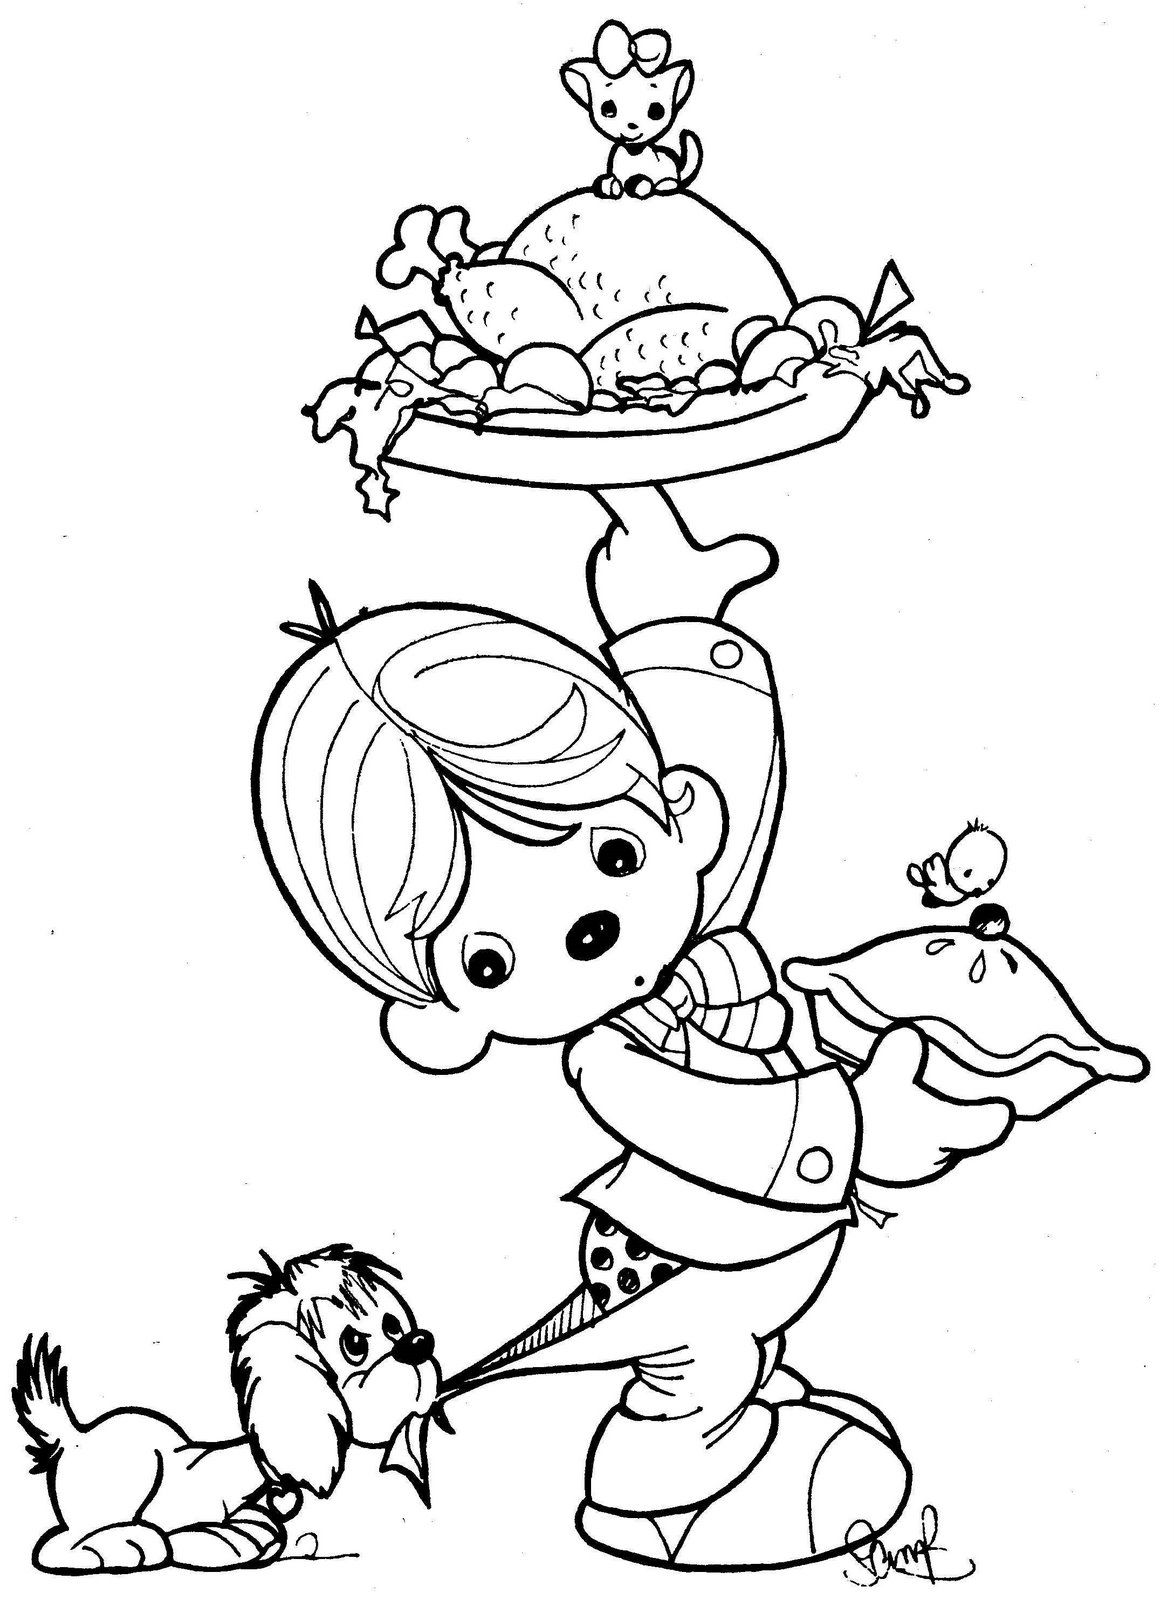 Precious Moments Bible Coloring Pages | Precious Moments waiter ...